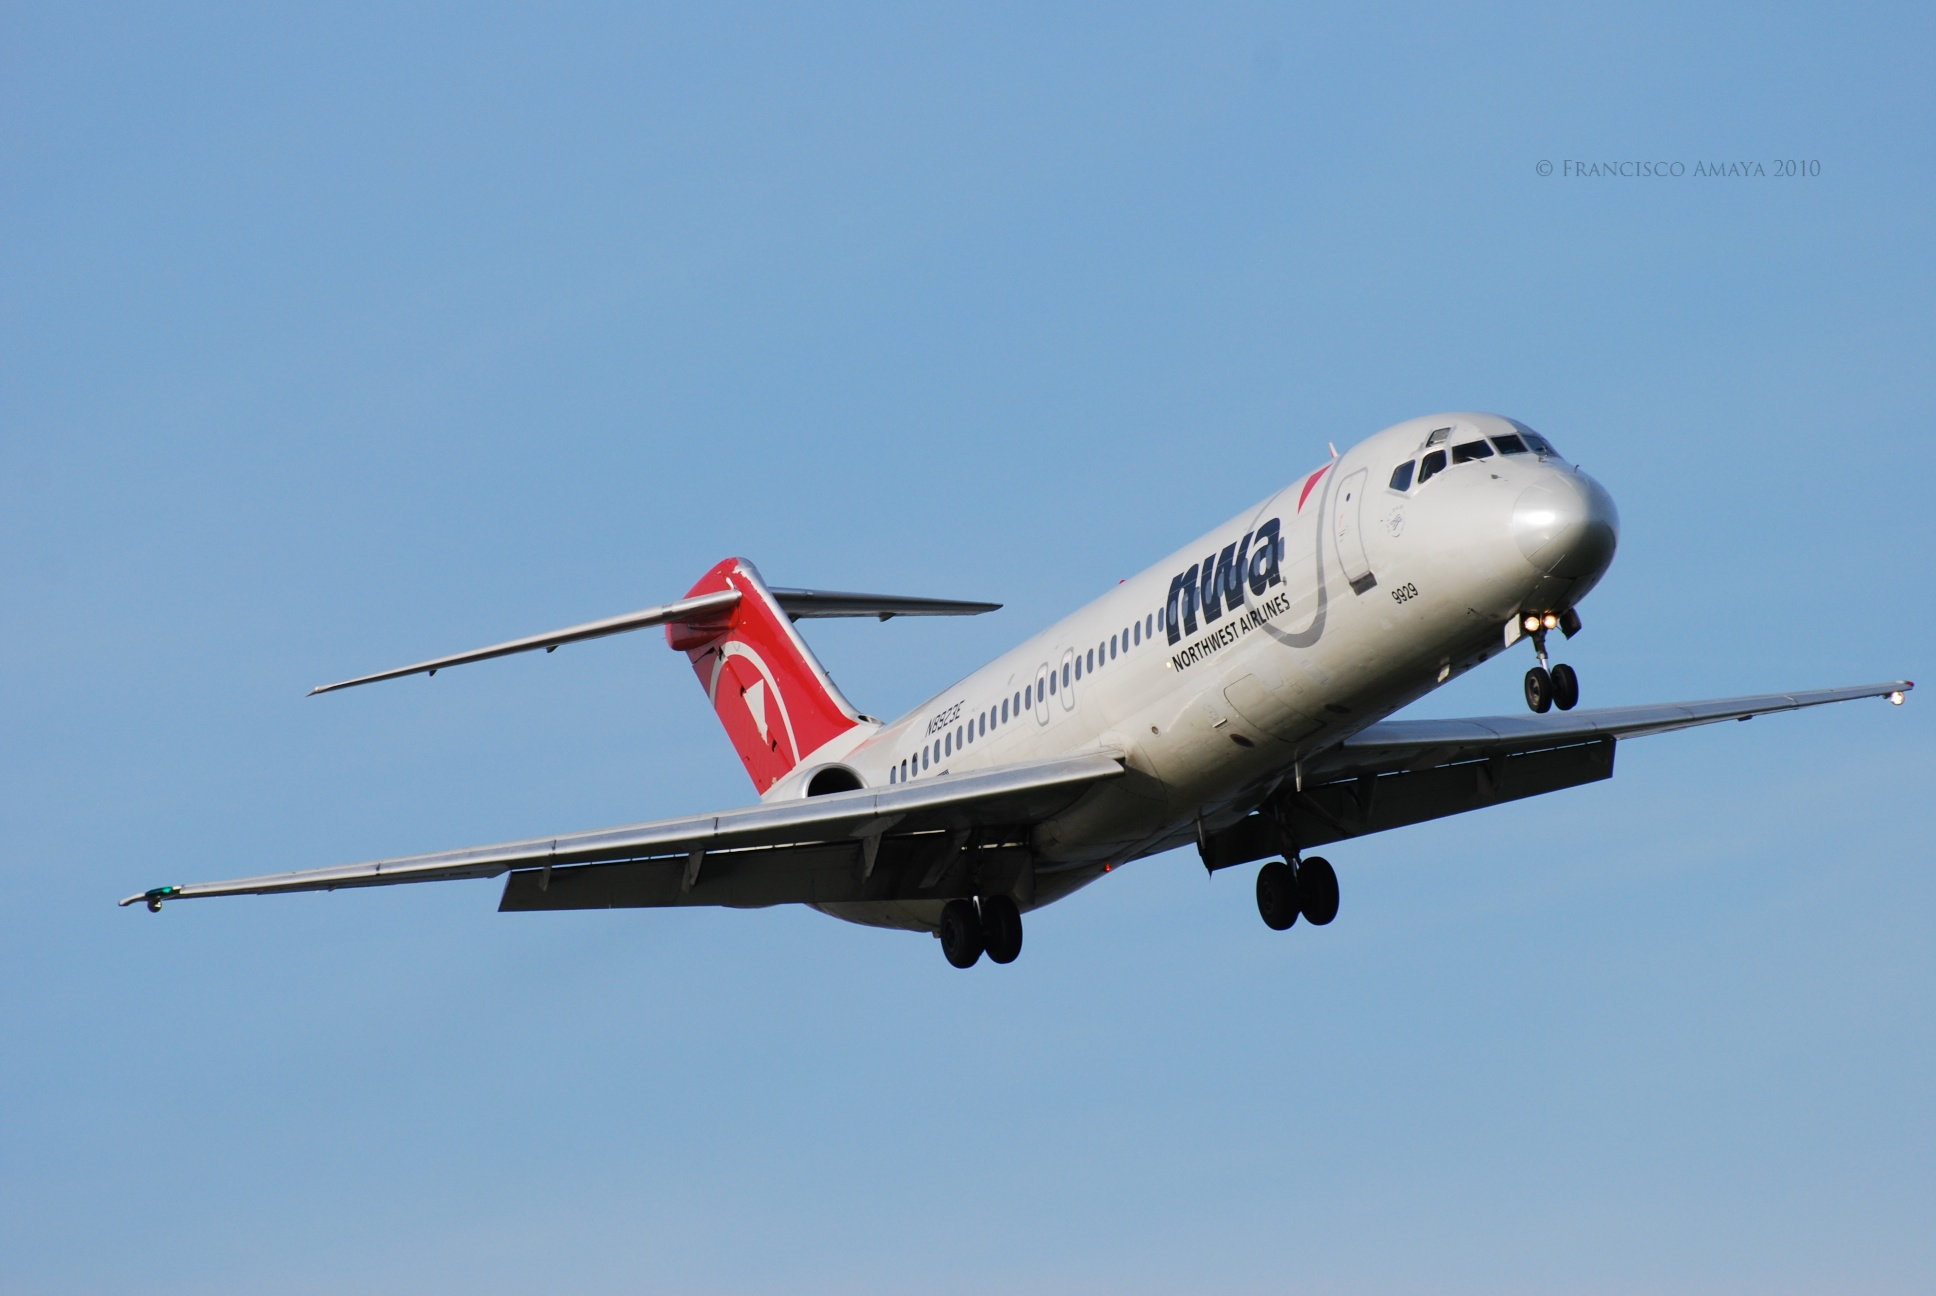 Delta Air Lines (Northwest Airlines) DC-9 (N8923E)